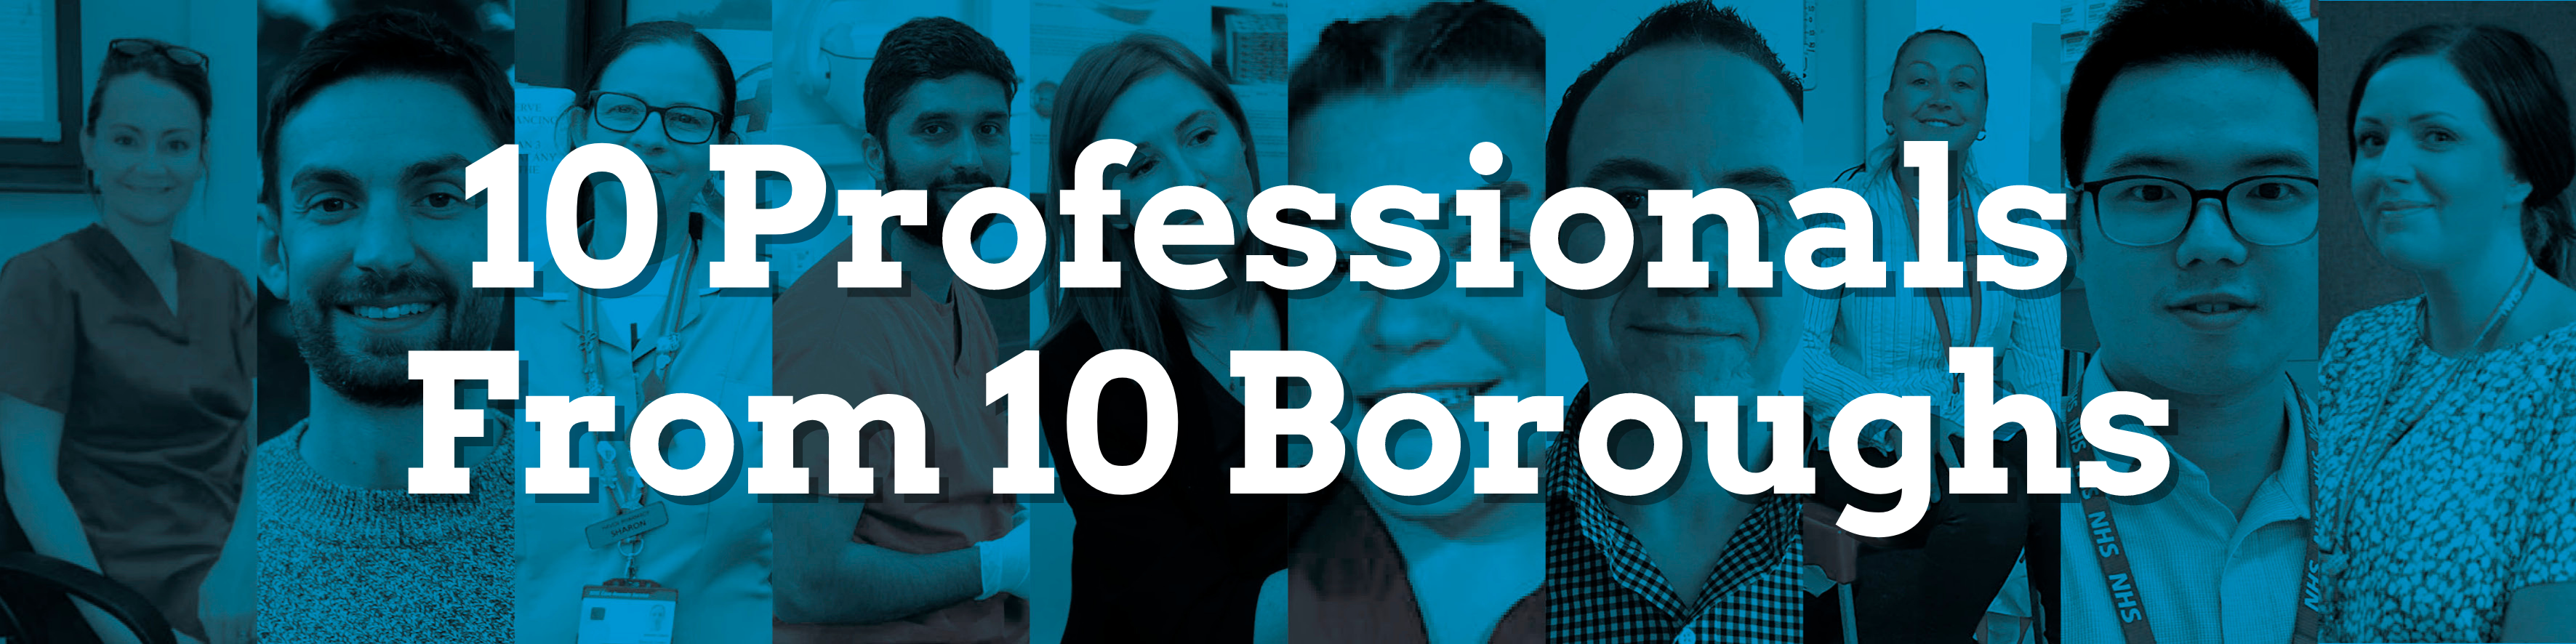 10 Professionals From 10 Boroughs header